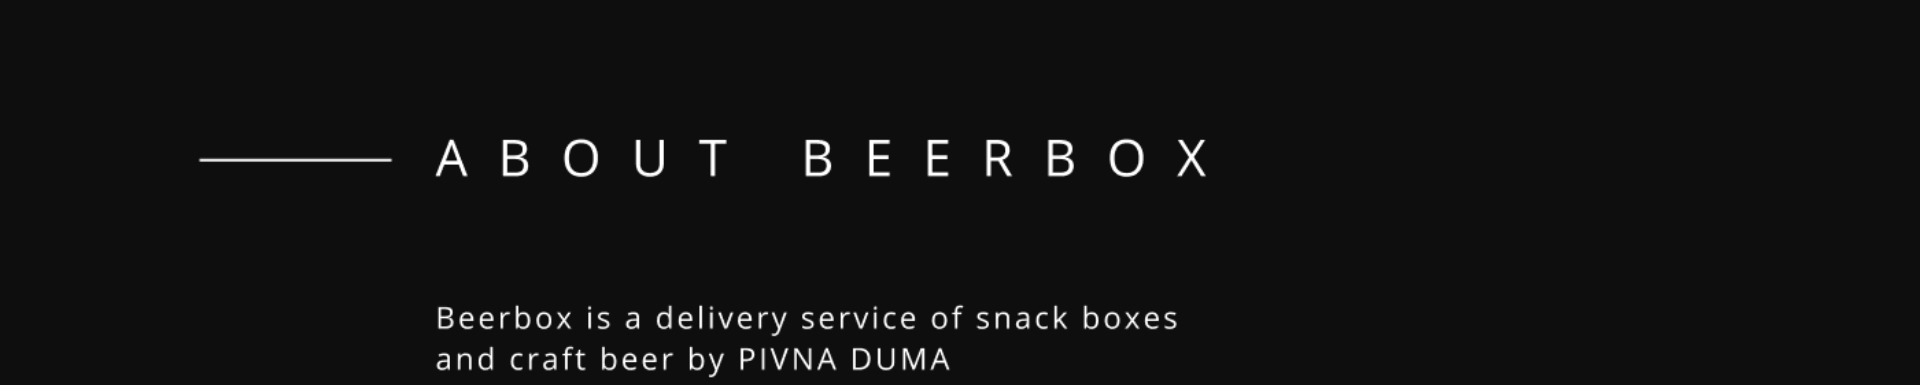 About Beerbox